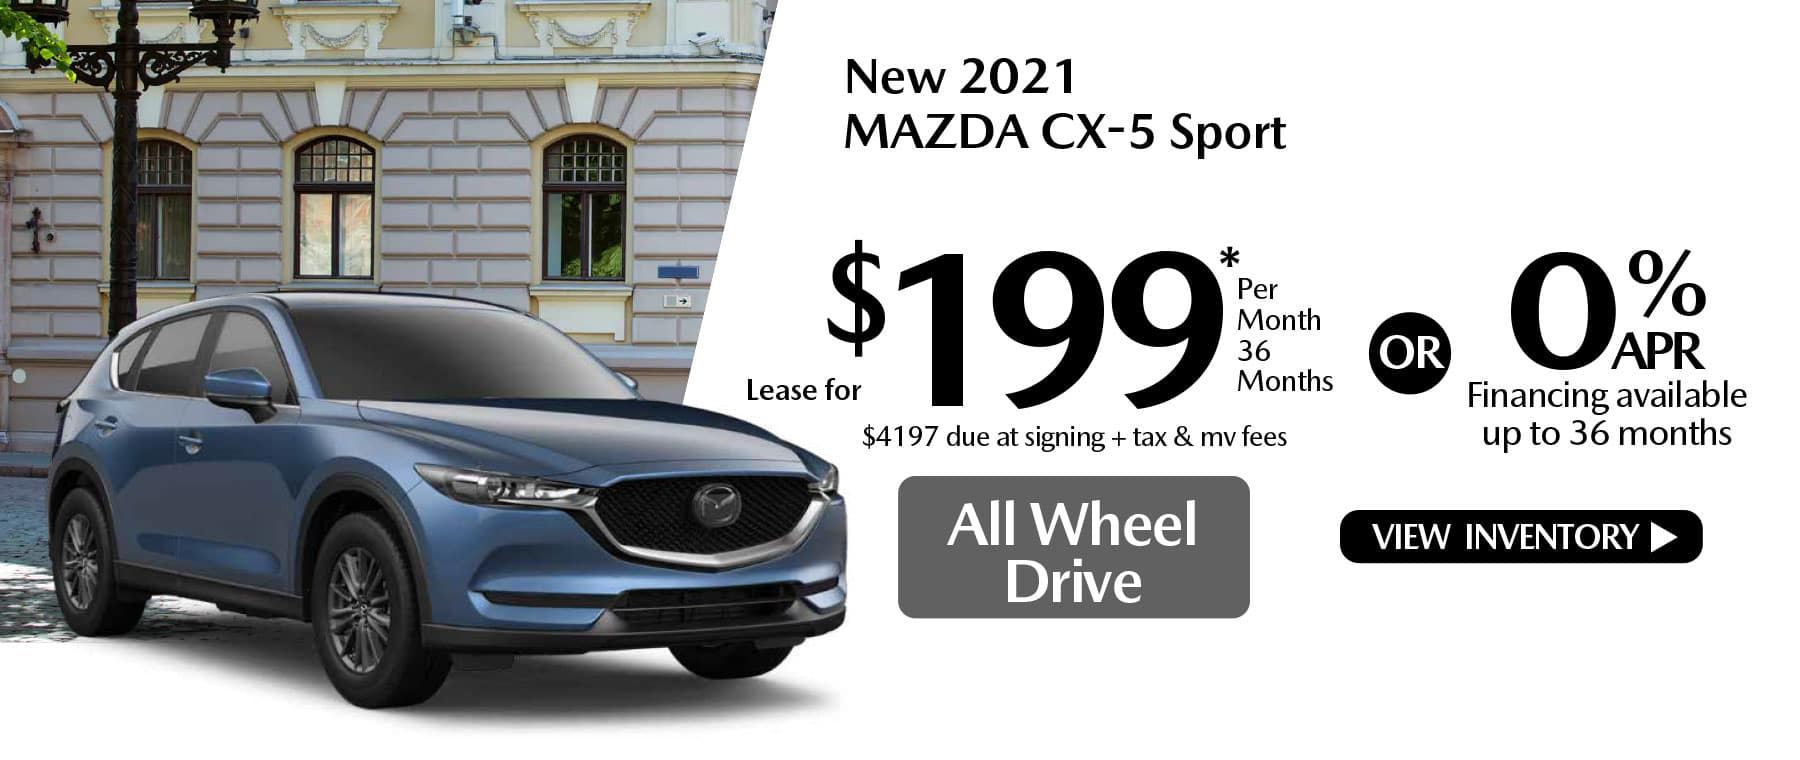 hi CX-5 New Lease Special Offer Mazda of New Rochelle NY